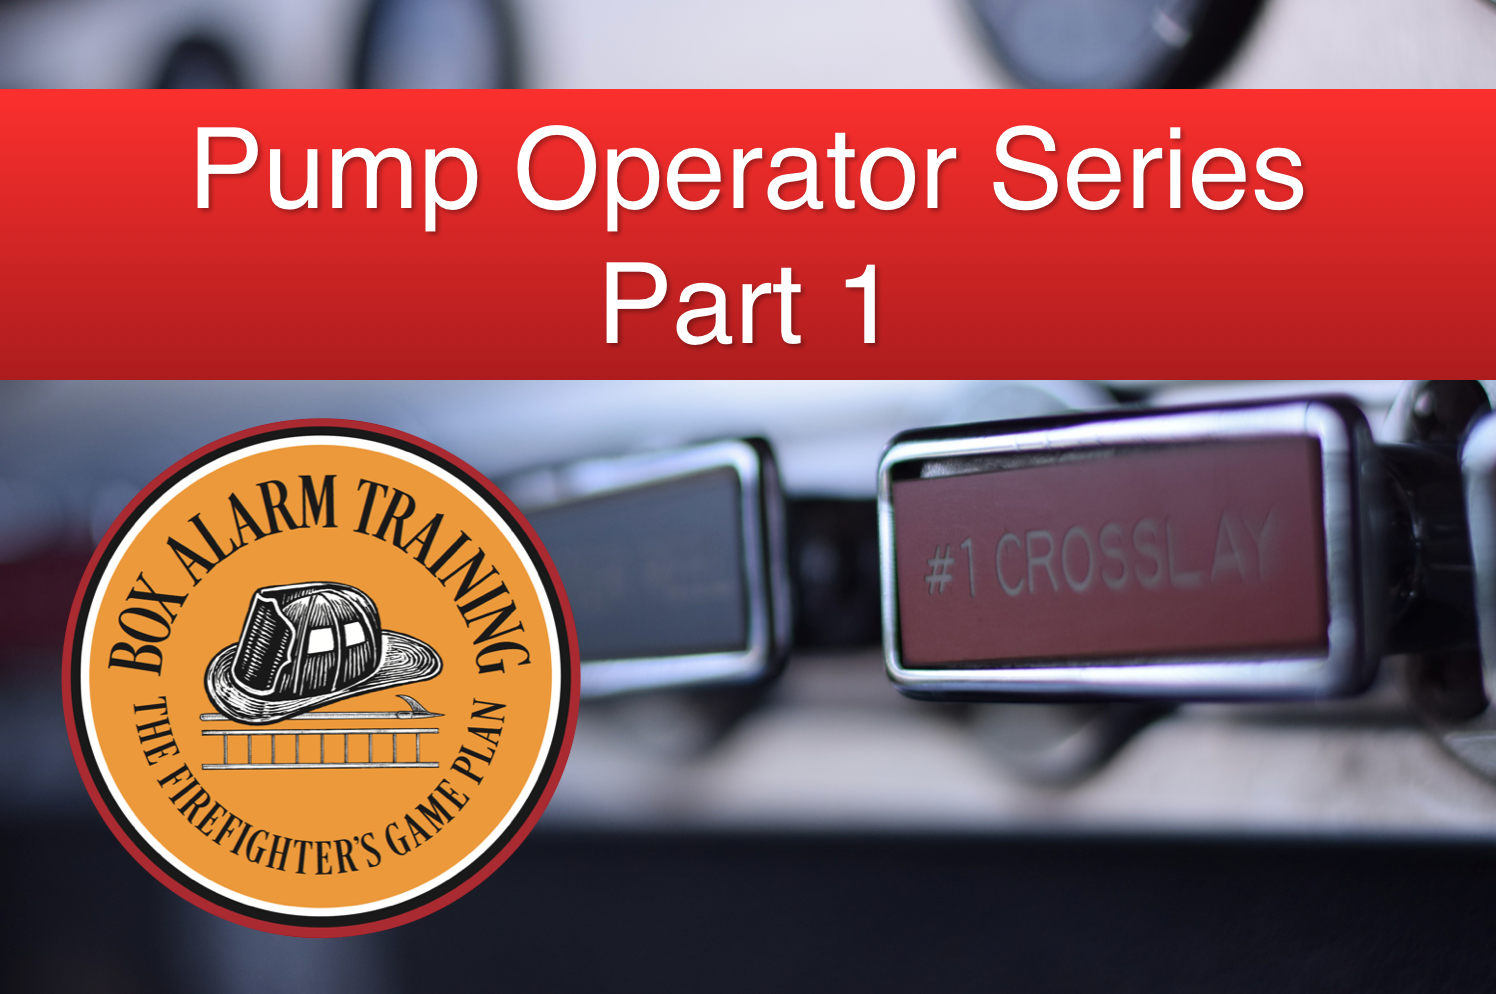 Pump Operator Series - Part 1